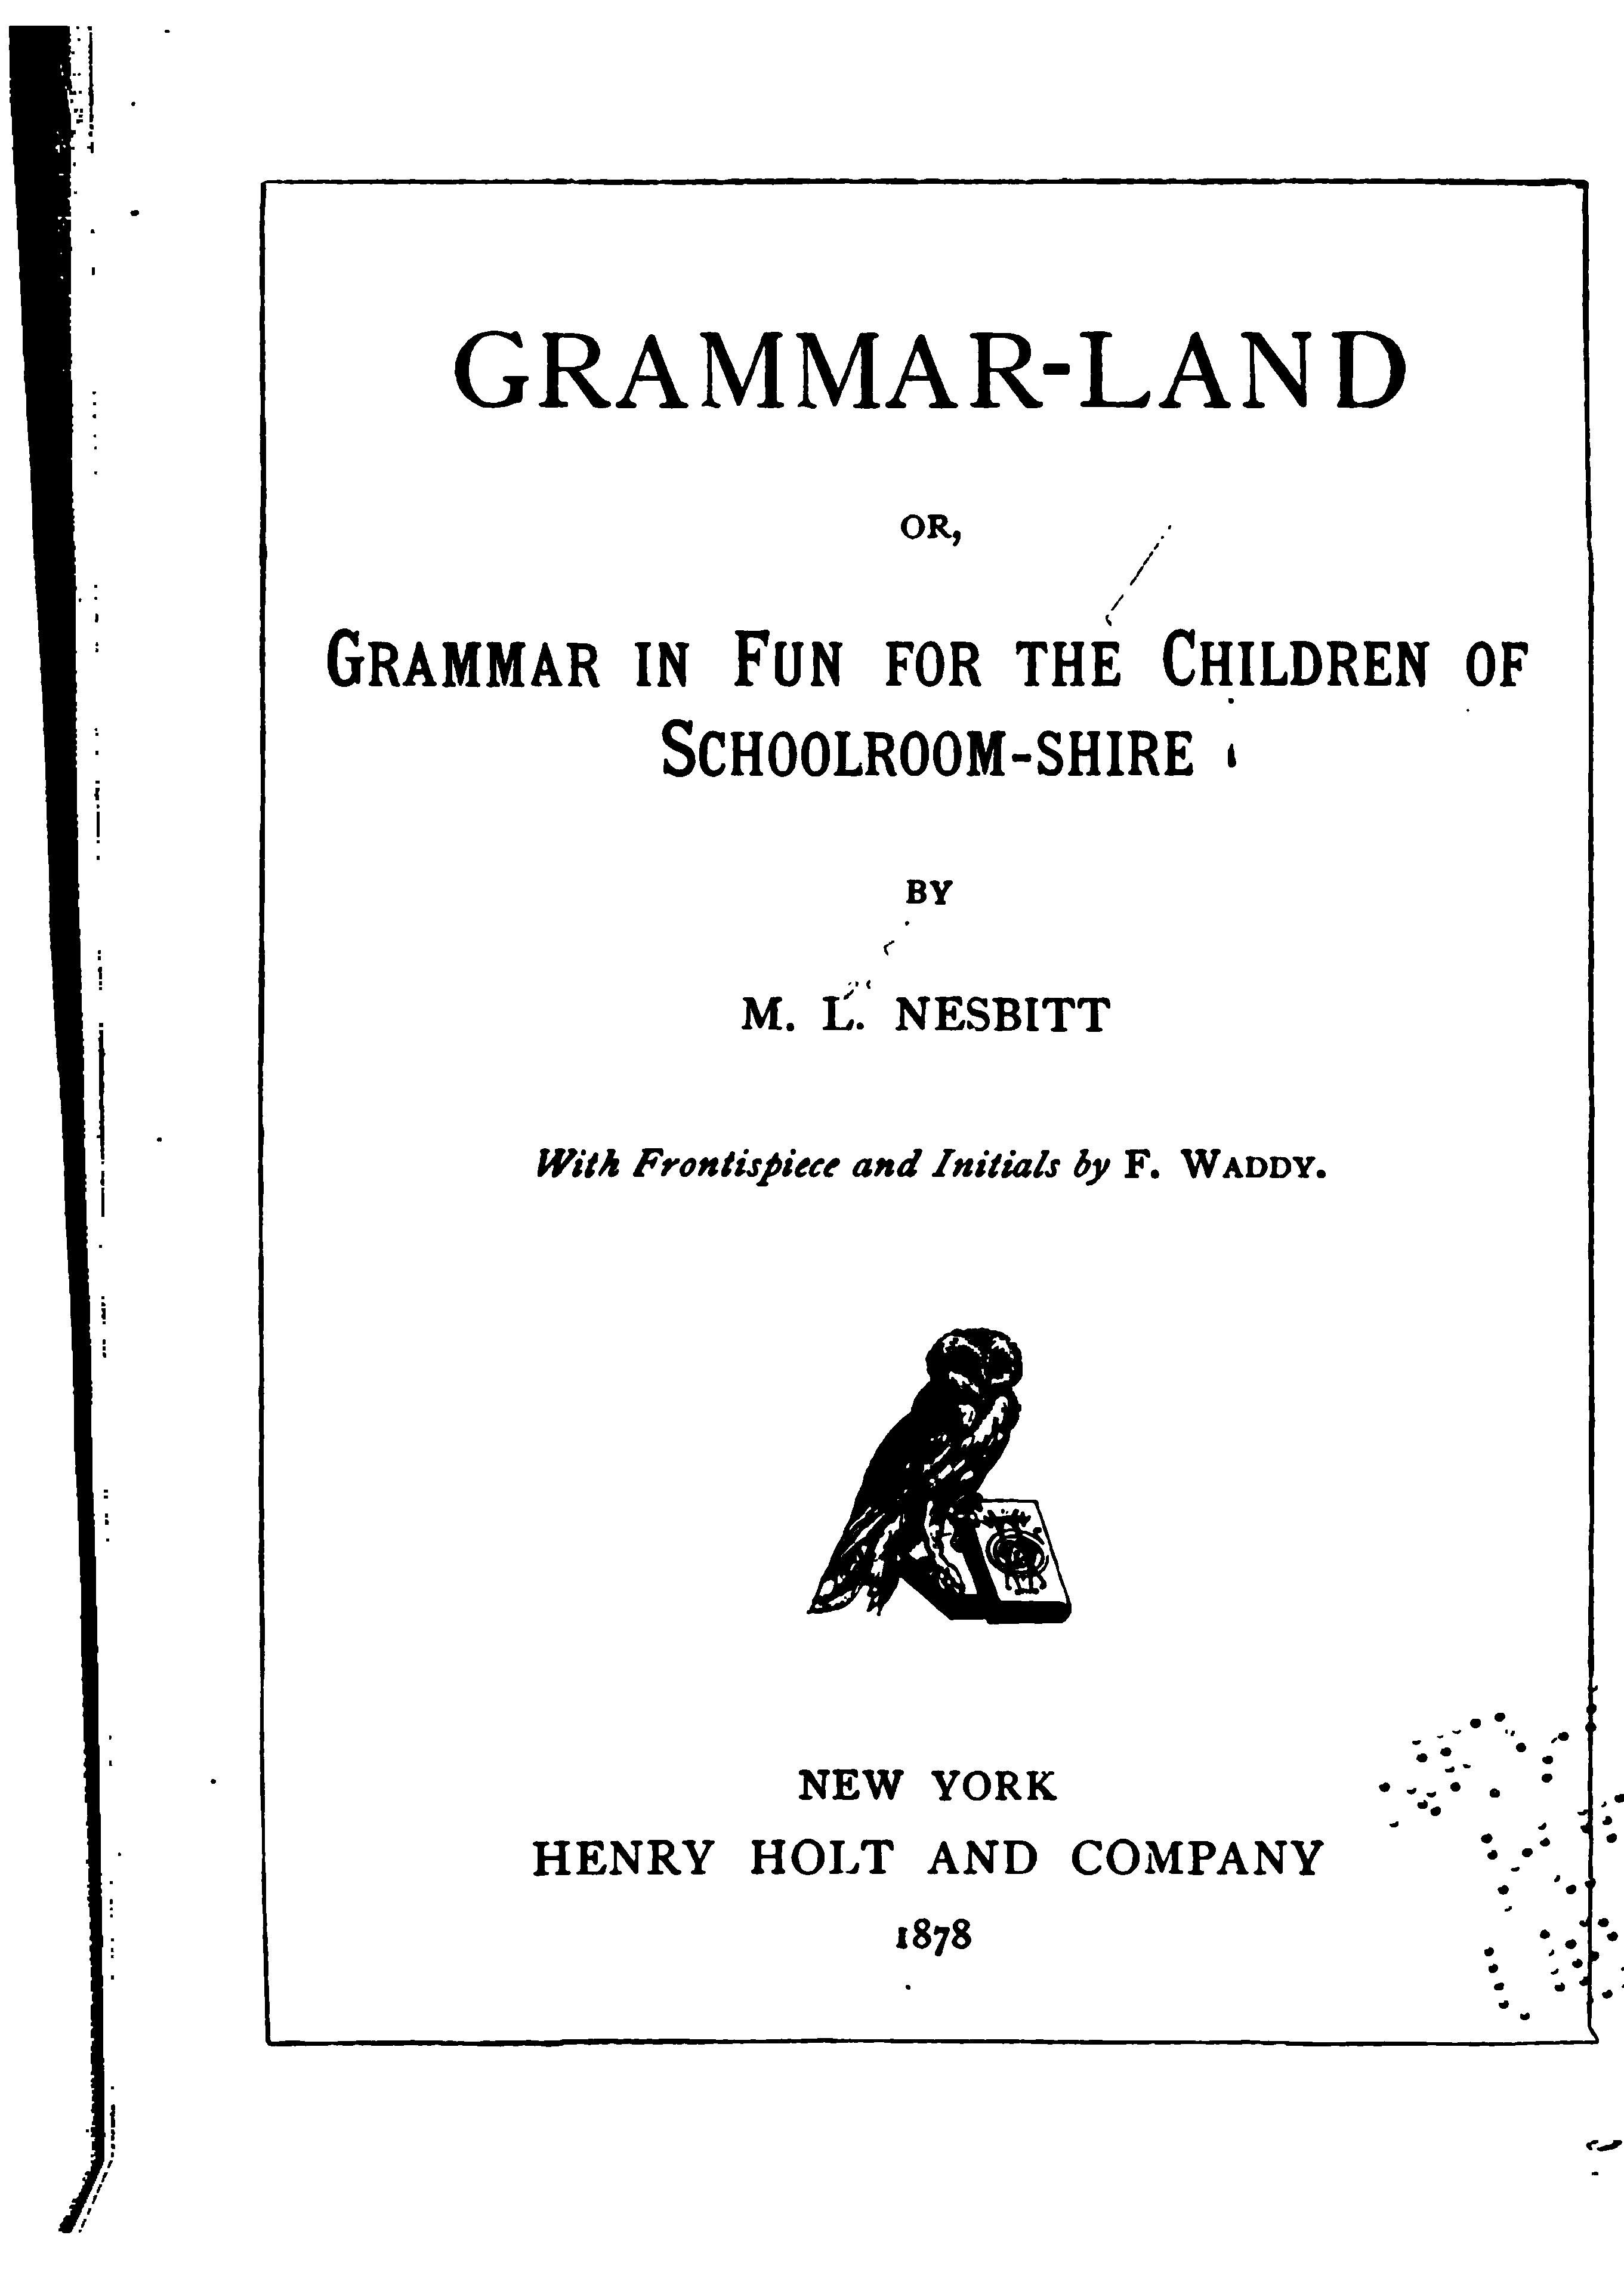 Waldorf 4th Grade Grammar Grammar Land Book Free